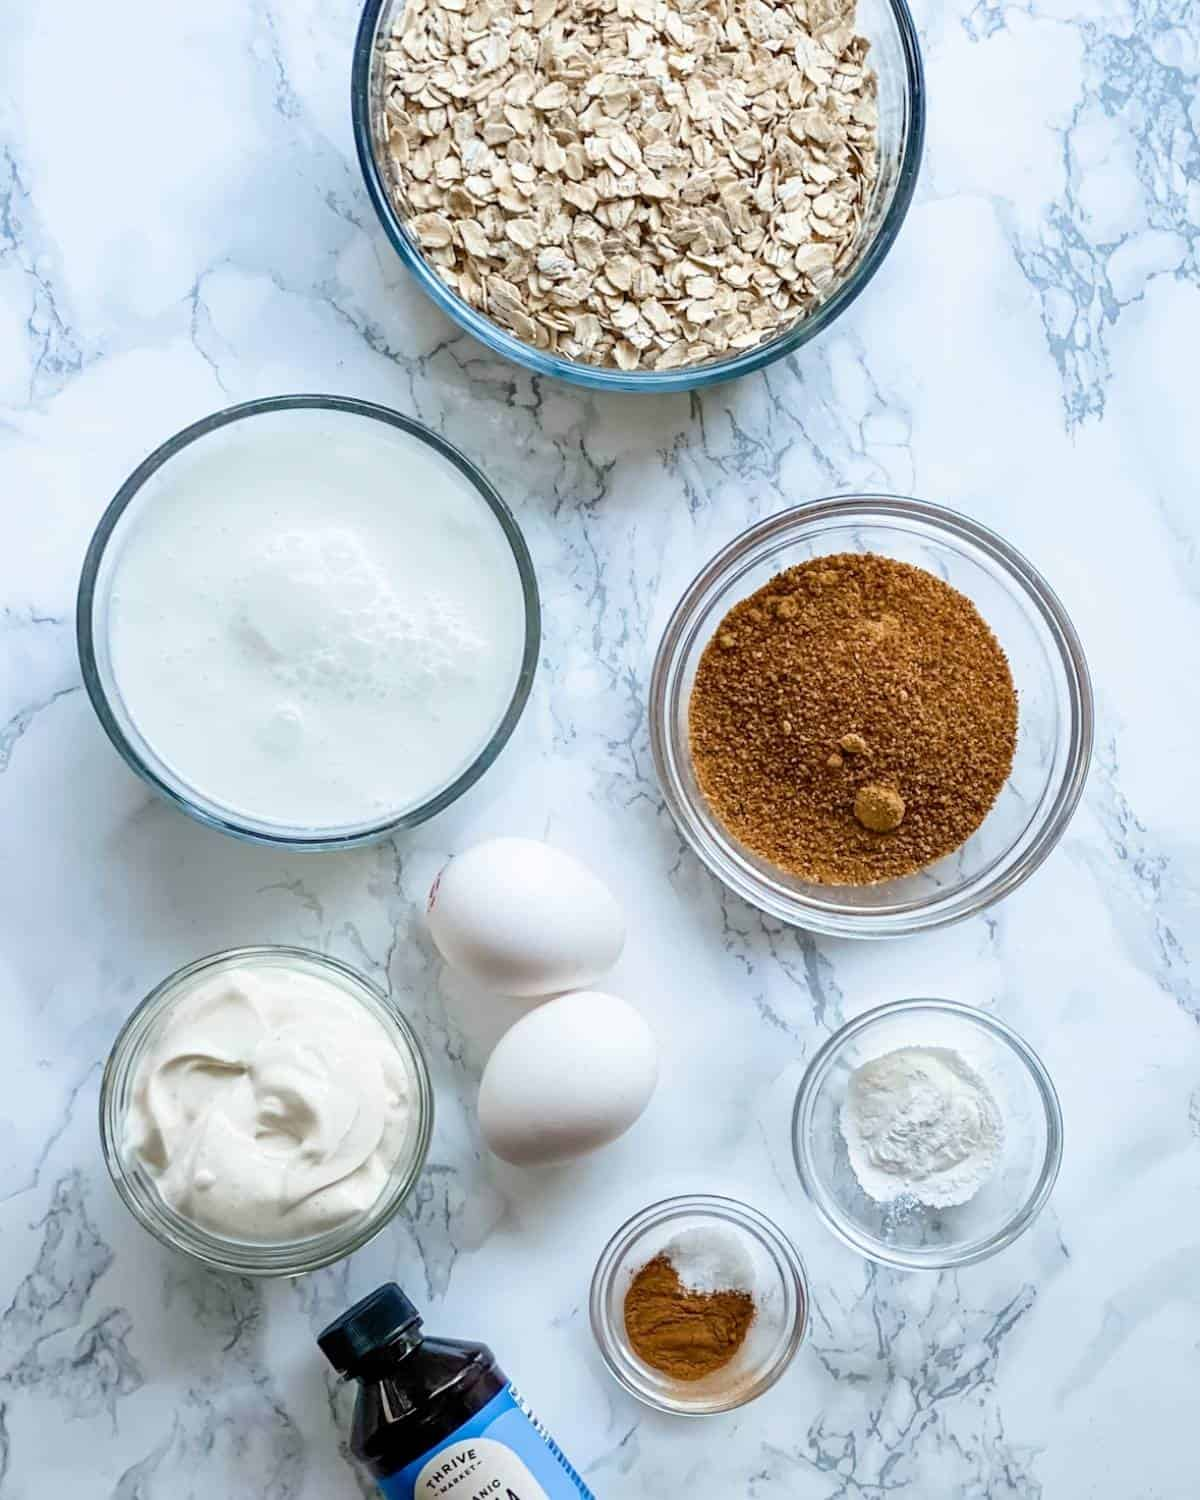 ingredients to make baked oatmeal.